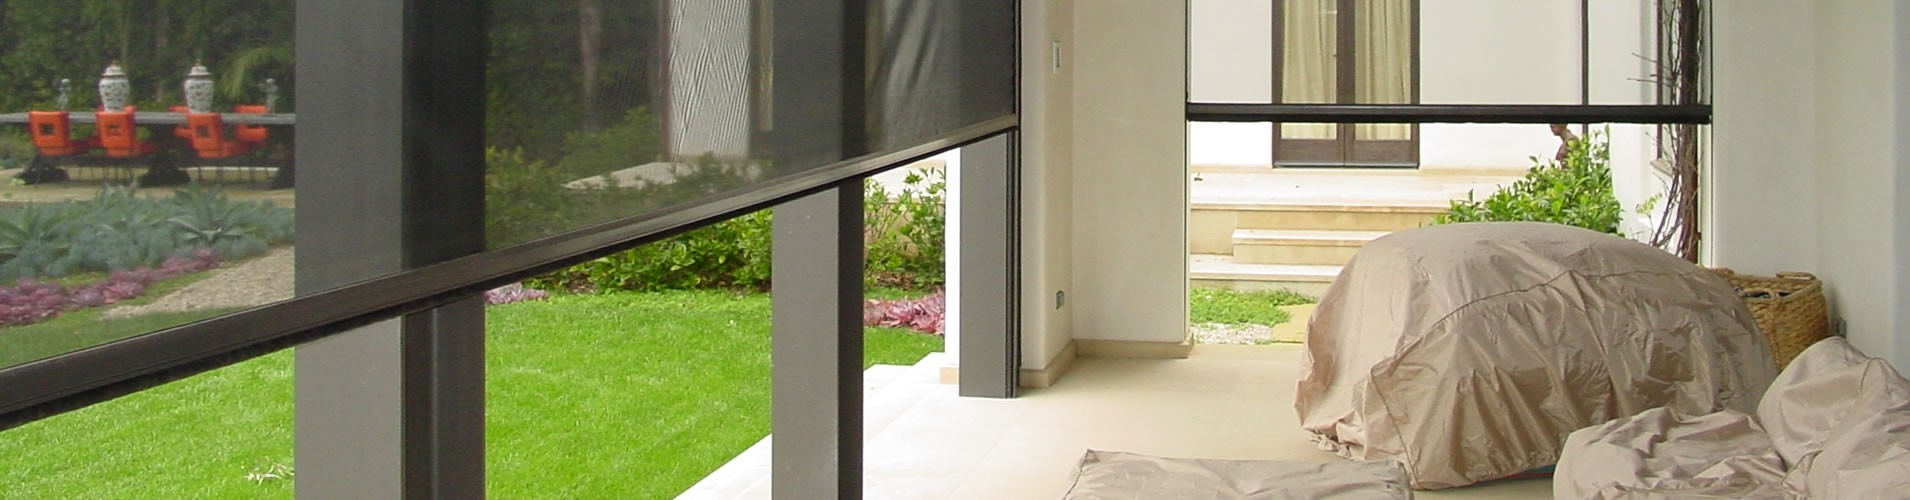 San Antonio Retractable Screens